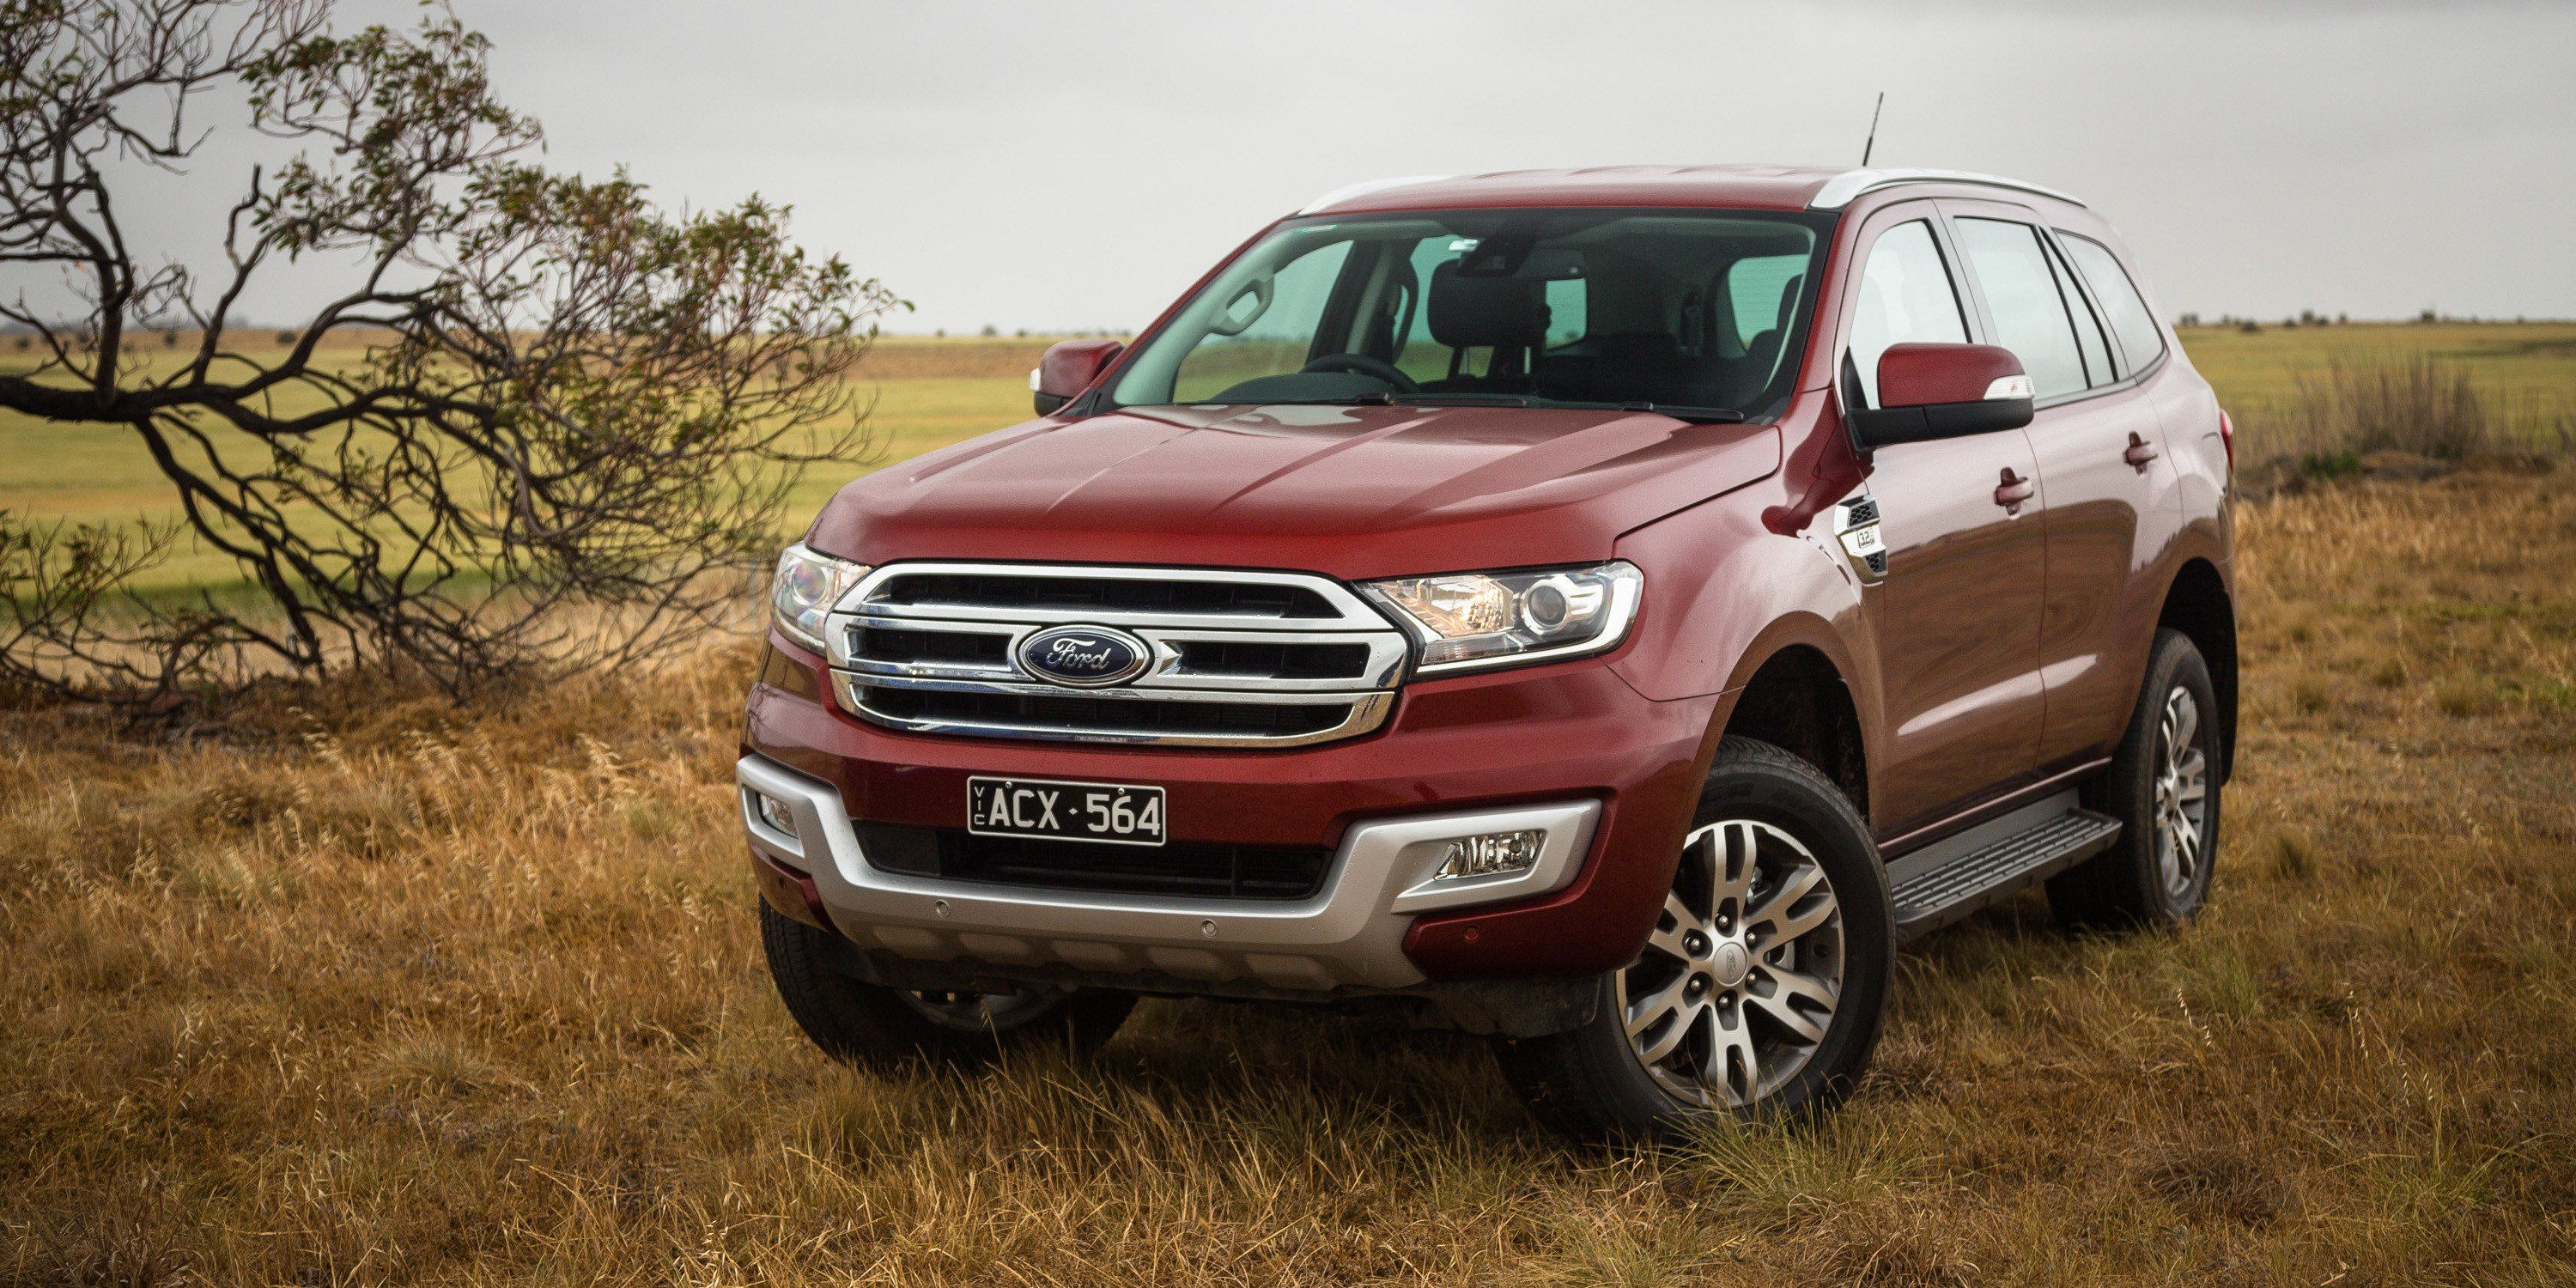 New Ford Everest Trend V Toyota Fortuner Crusade Comparison On This Month